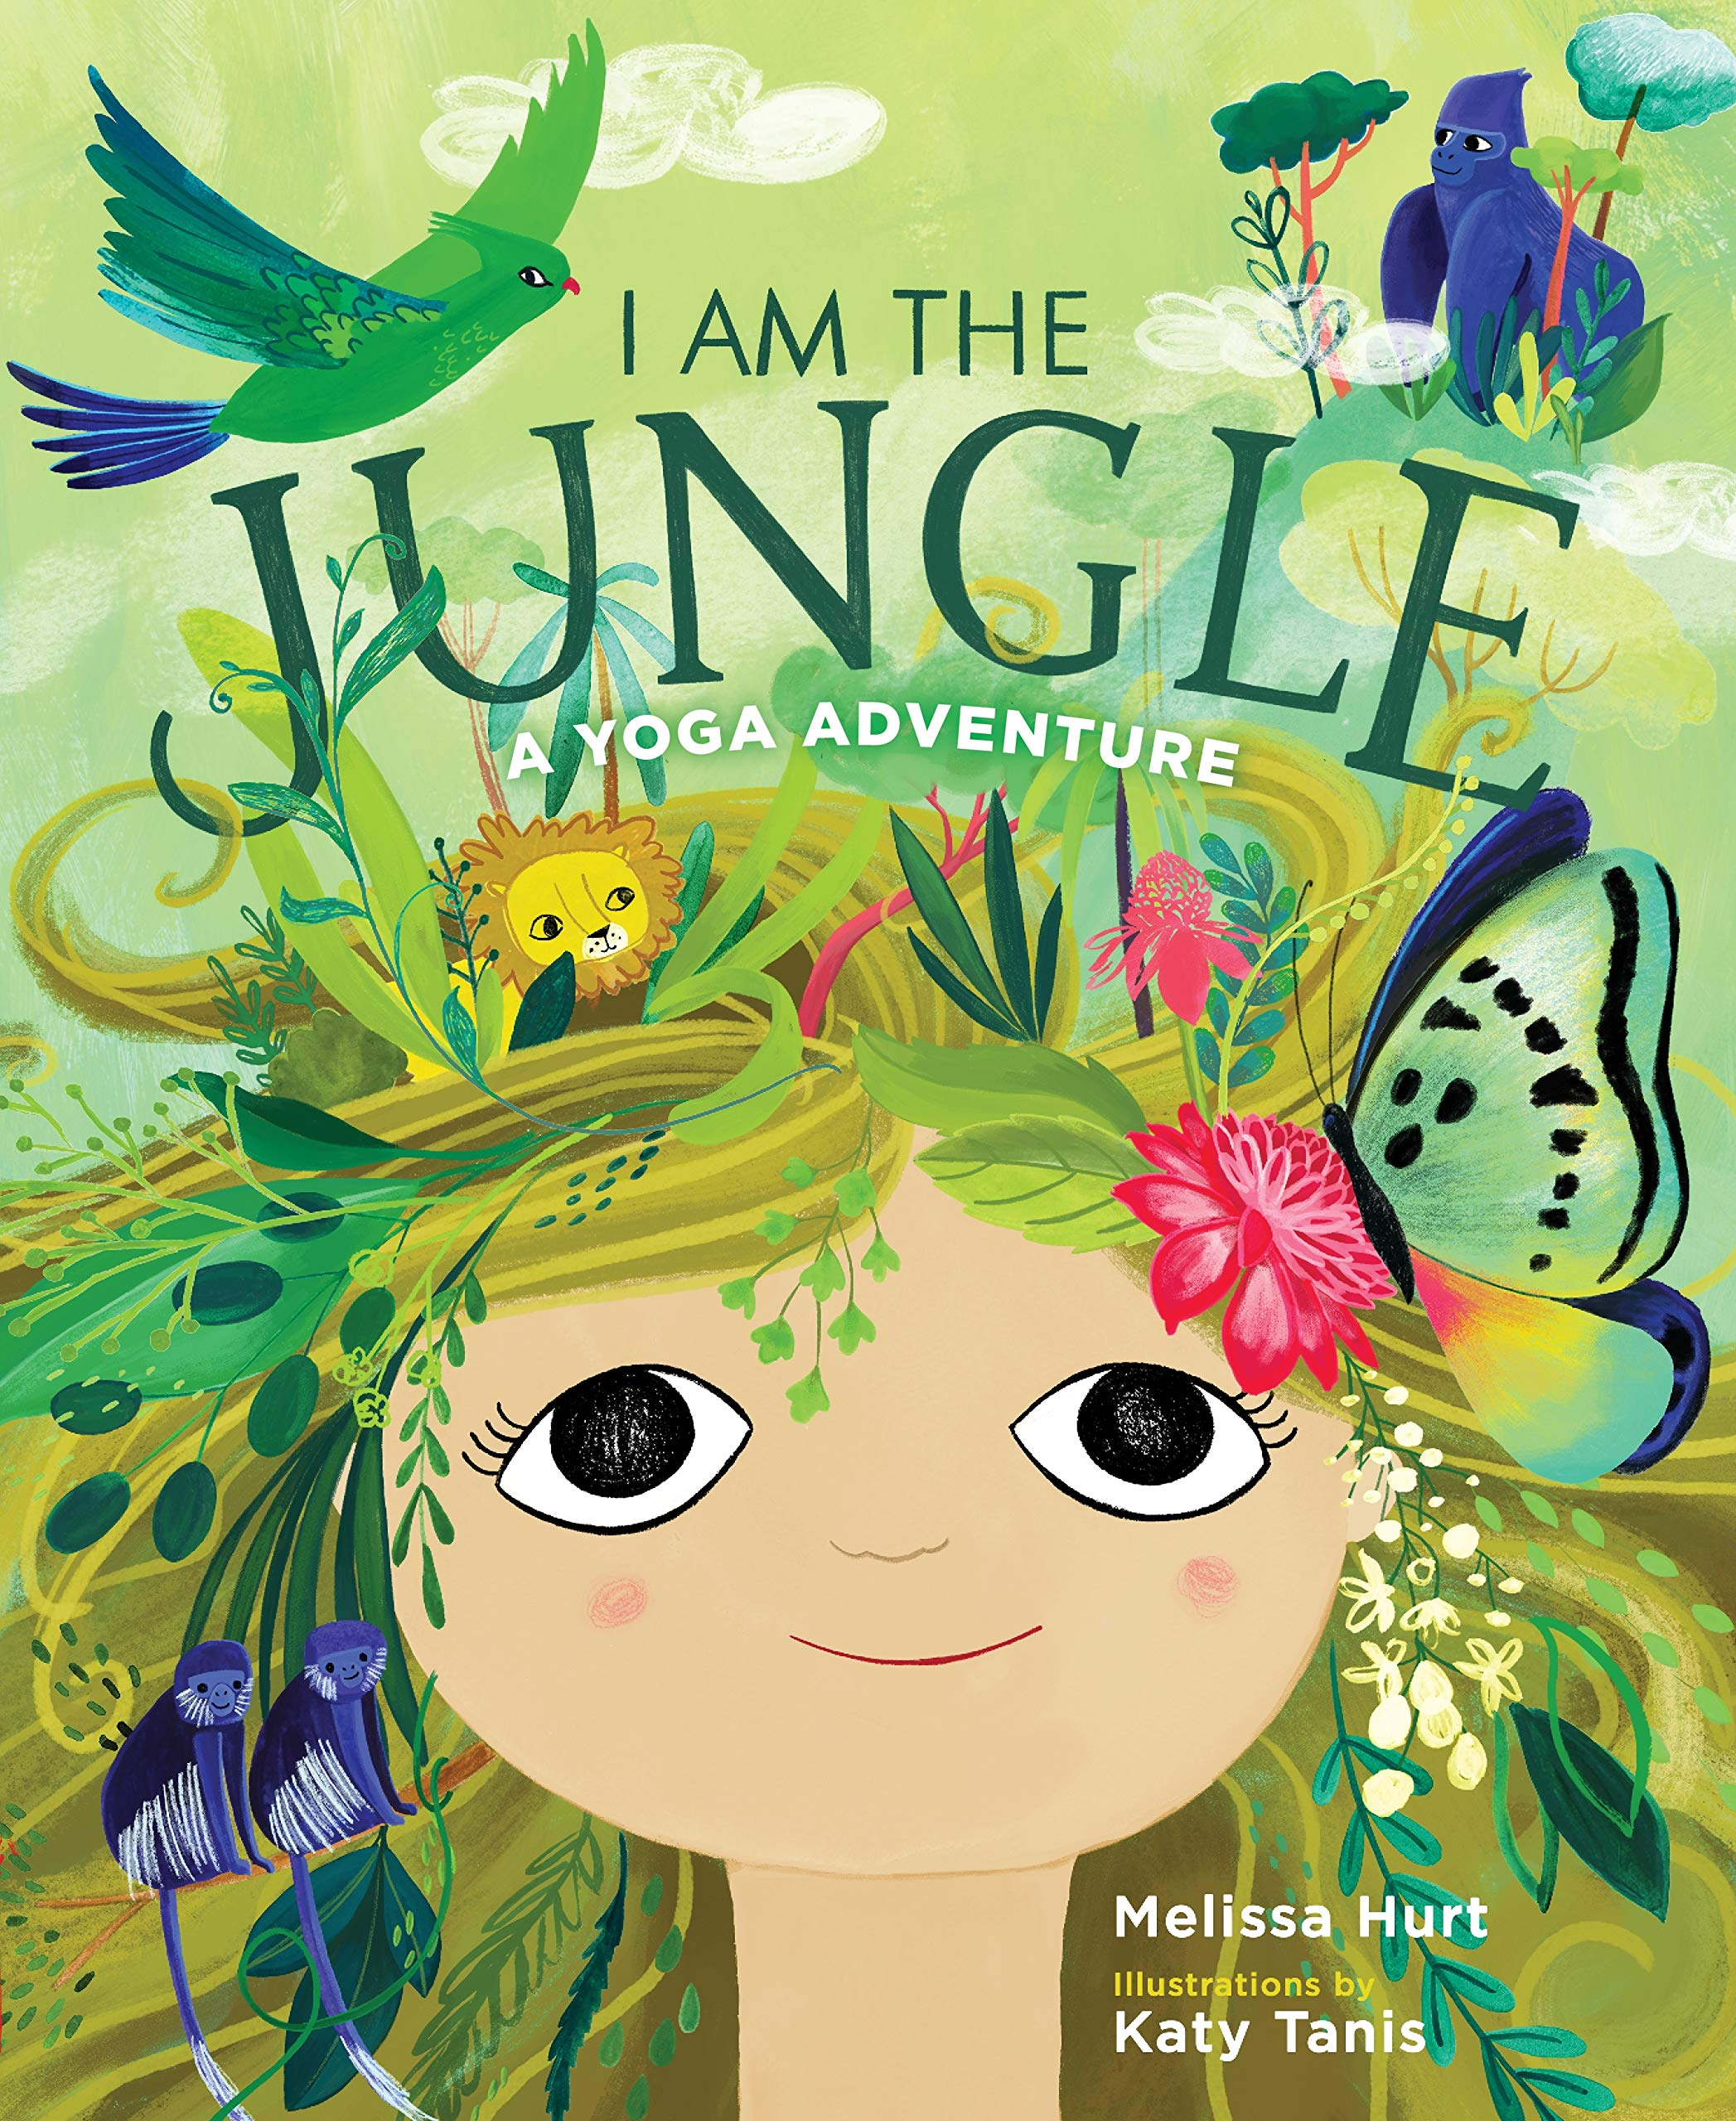 I Am the Jungle: A Yoga Adventure: Melissa Hurt, Katy Tanis ...